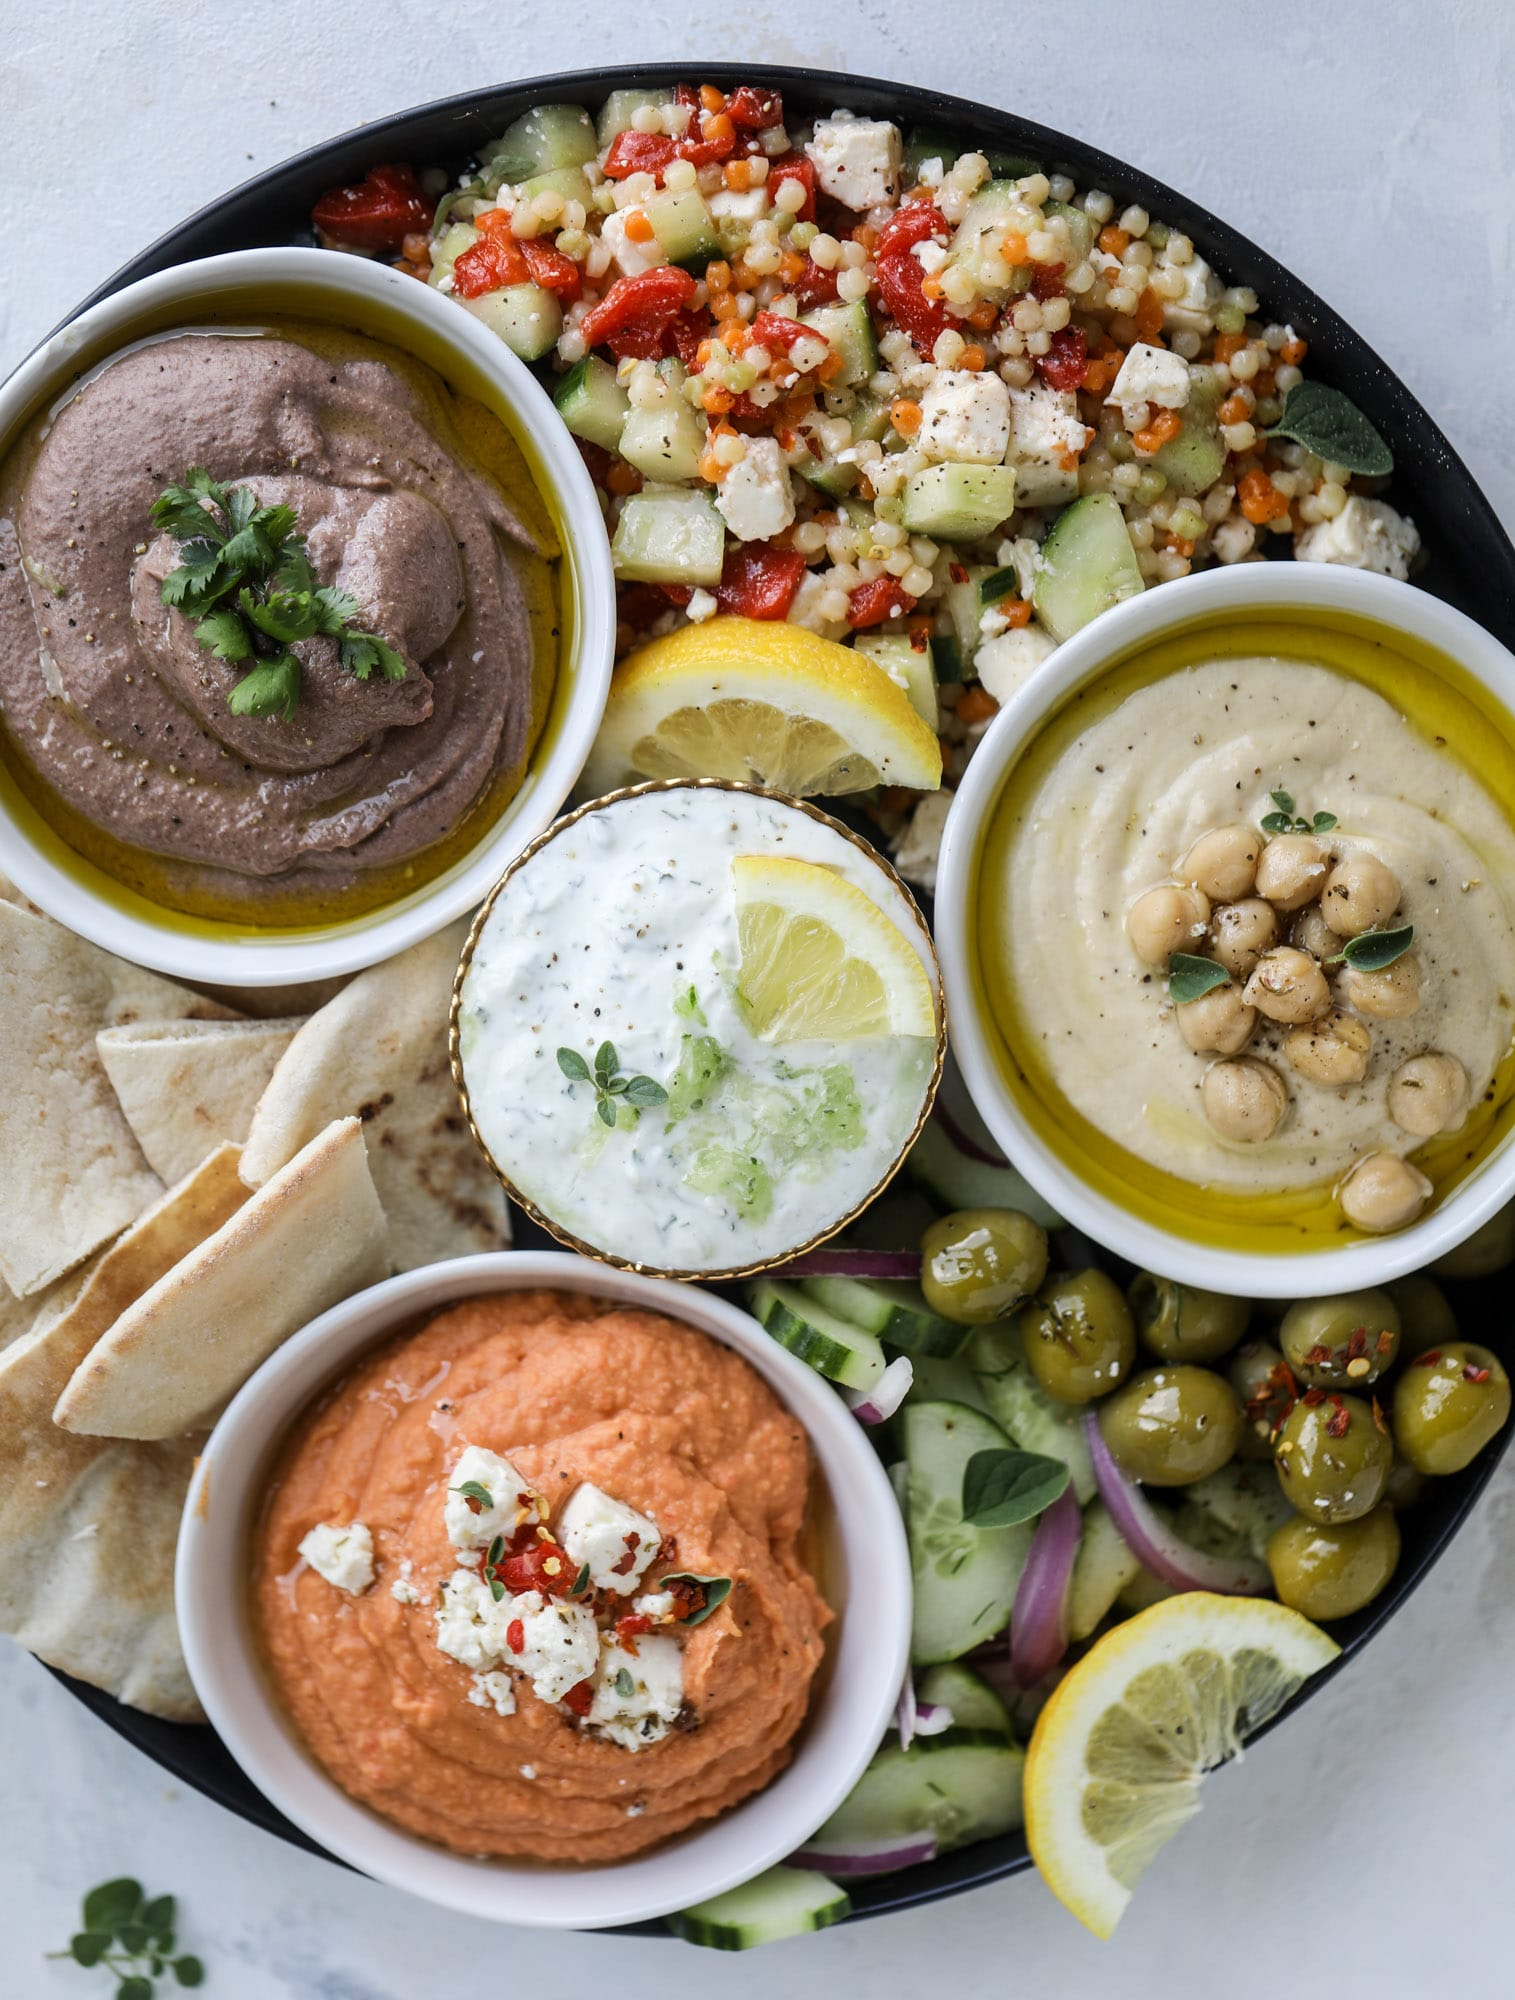 Here you can find out how to make the perfect hummus platter! This trio includes caramelized onion hummus, smoky black bean hummus and roasted red pepper white bean hummus, along with a couscous salad and quick tzatziki! I howsweeteats.com #hummus #platter #appetizer #snack #chickpeas #healthy #blackbeans #yogurt #tzatziki